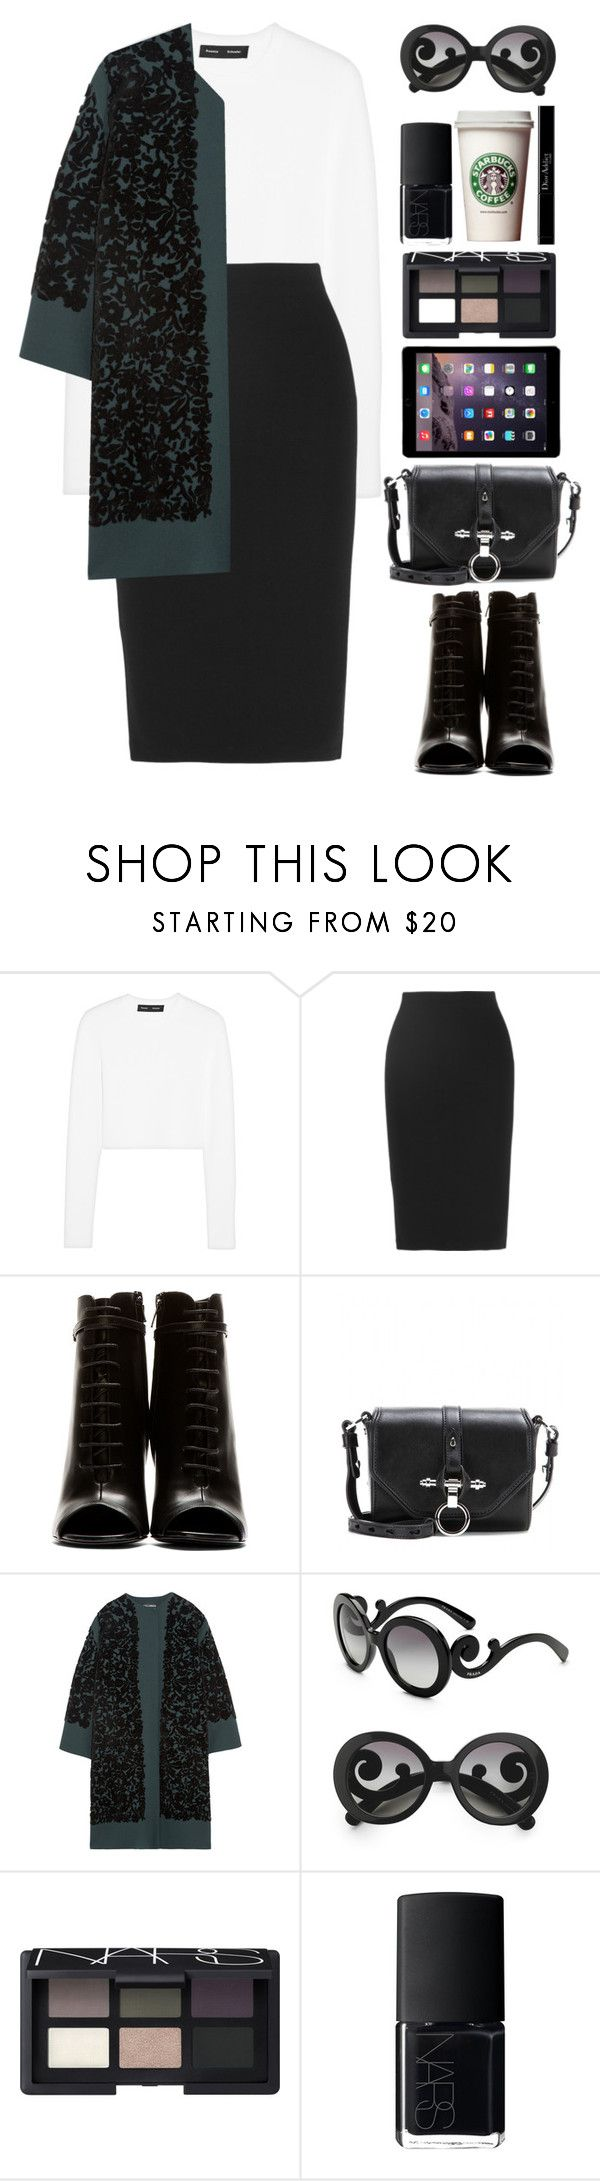 """""""Fashion week"""" by endimanche ❤ liked on Polyvore featuring мода, Proenza Schouler, McQ by Alexander McQueen, Yves Saint Laurent, Givenchy, Dolce&Gabbana, Prada, NARS Cosmetics и Christian Dior"""